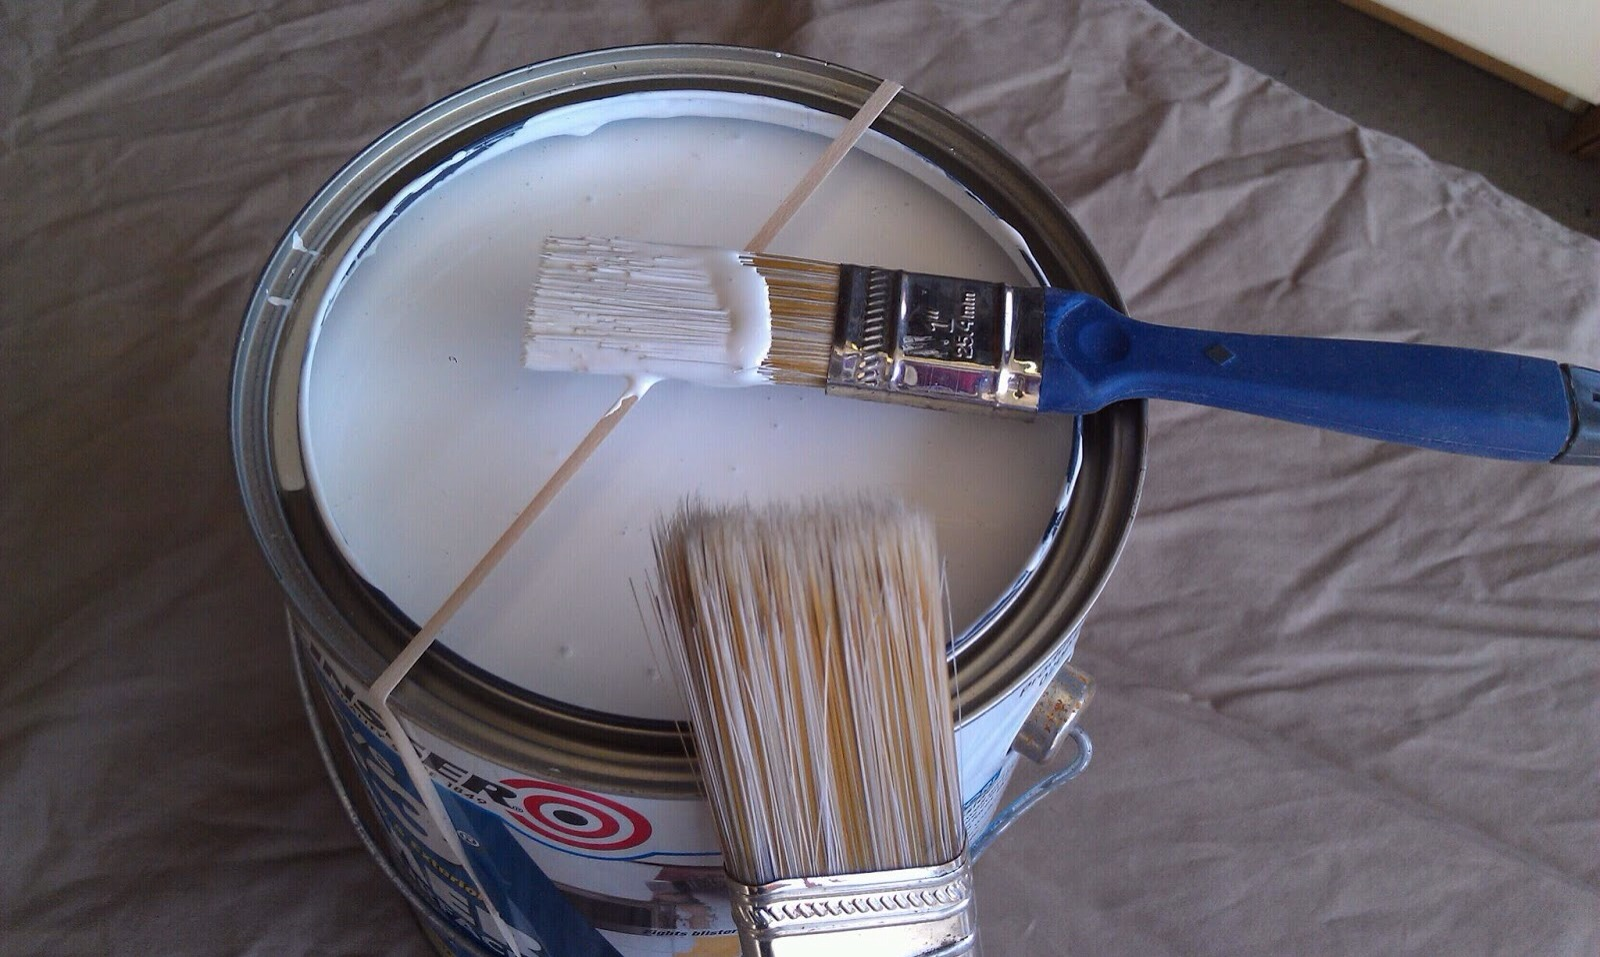 Place a rubber band around an open tin of paint to wipe the brush on and avoid getting paint on the edges on the tin.